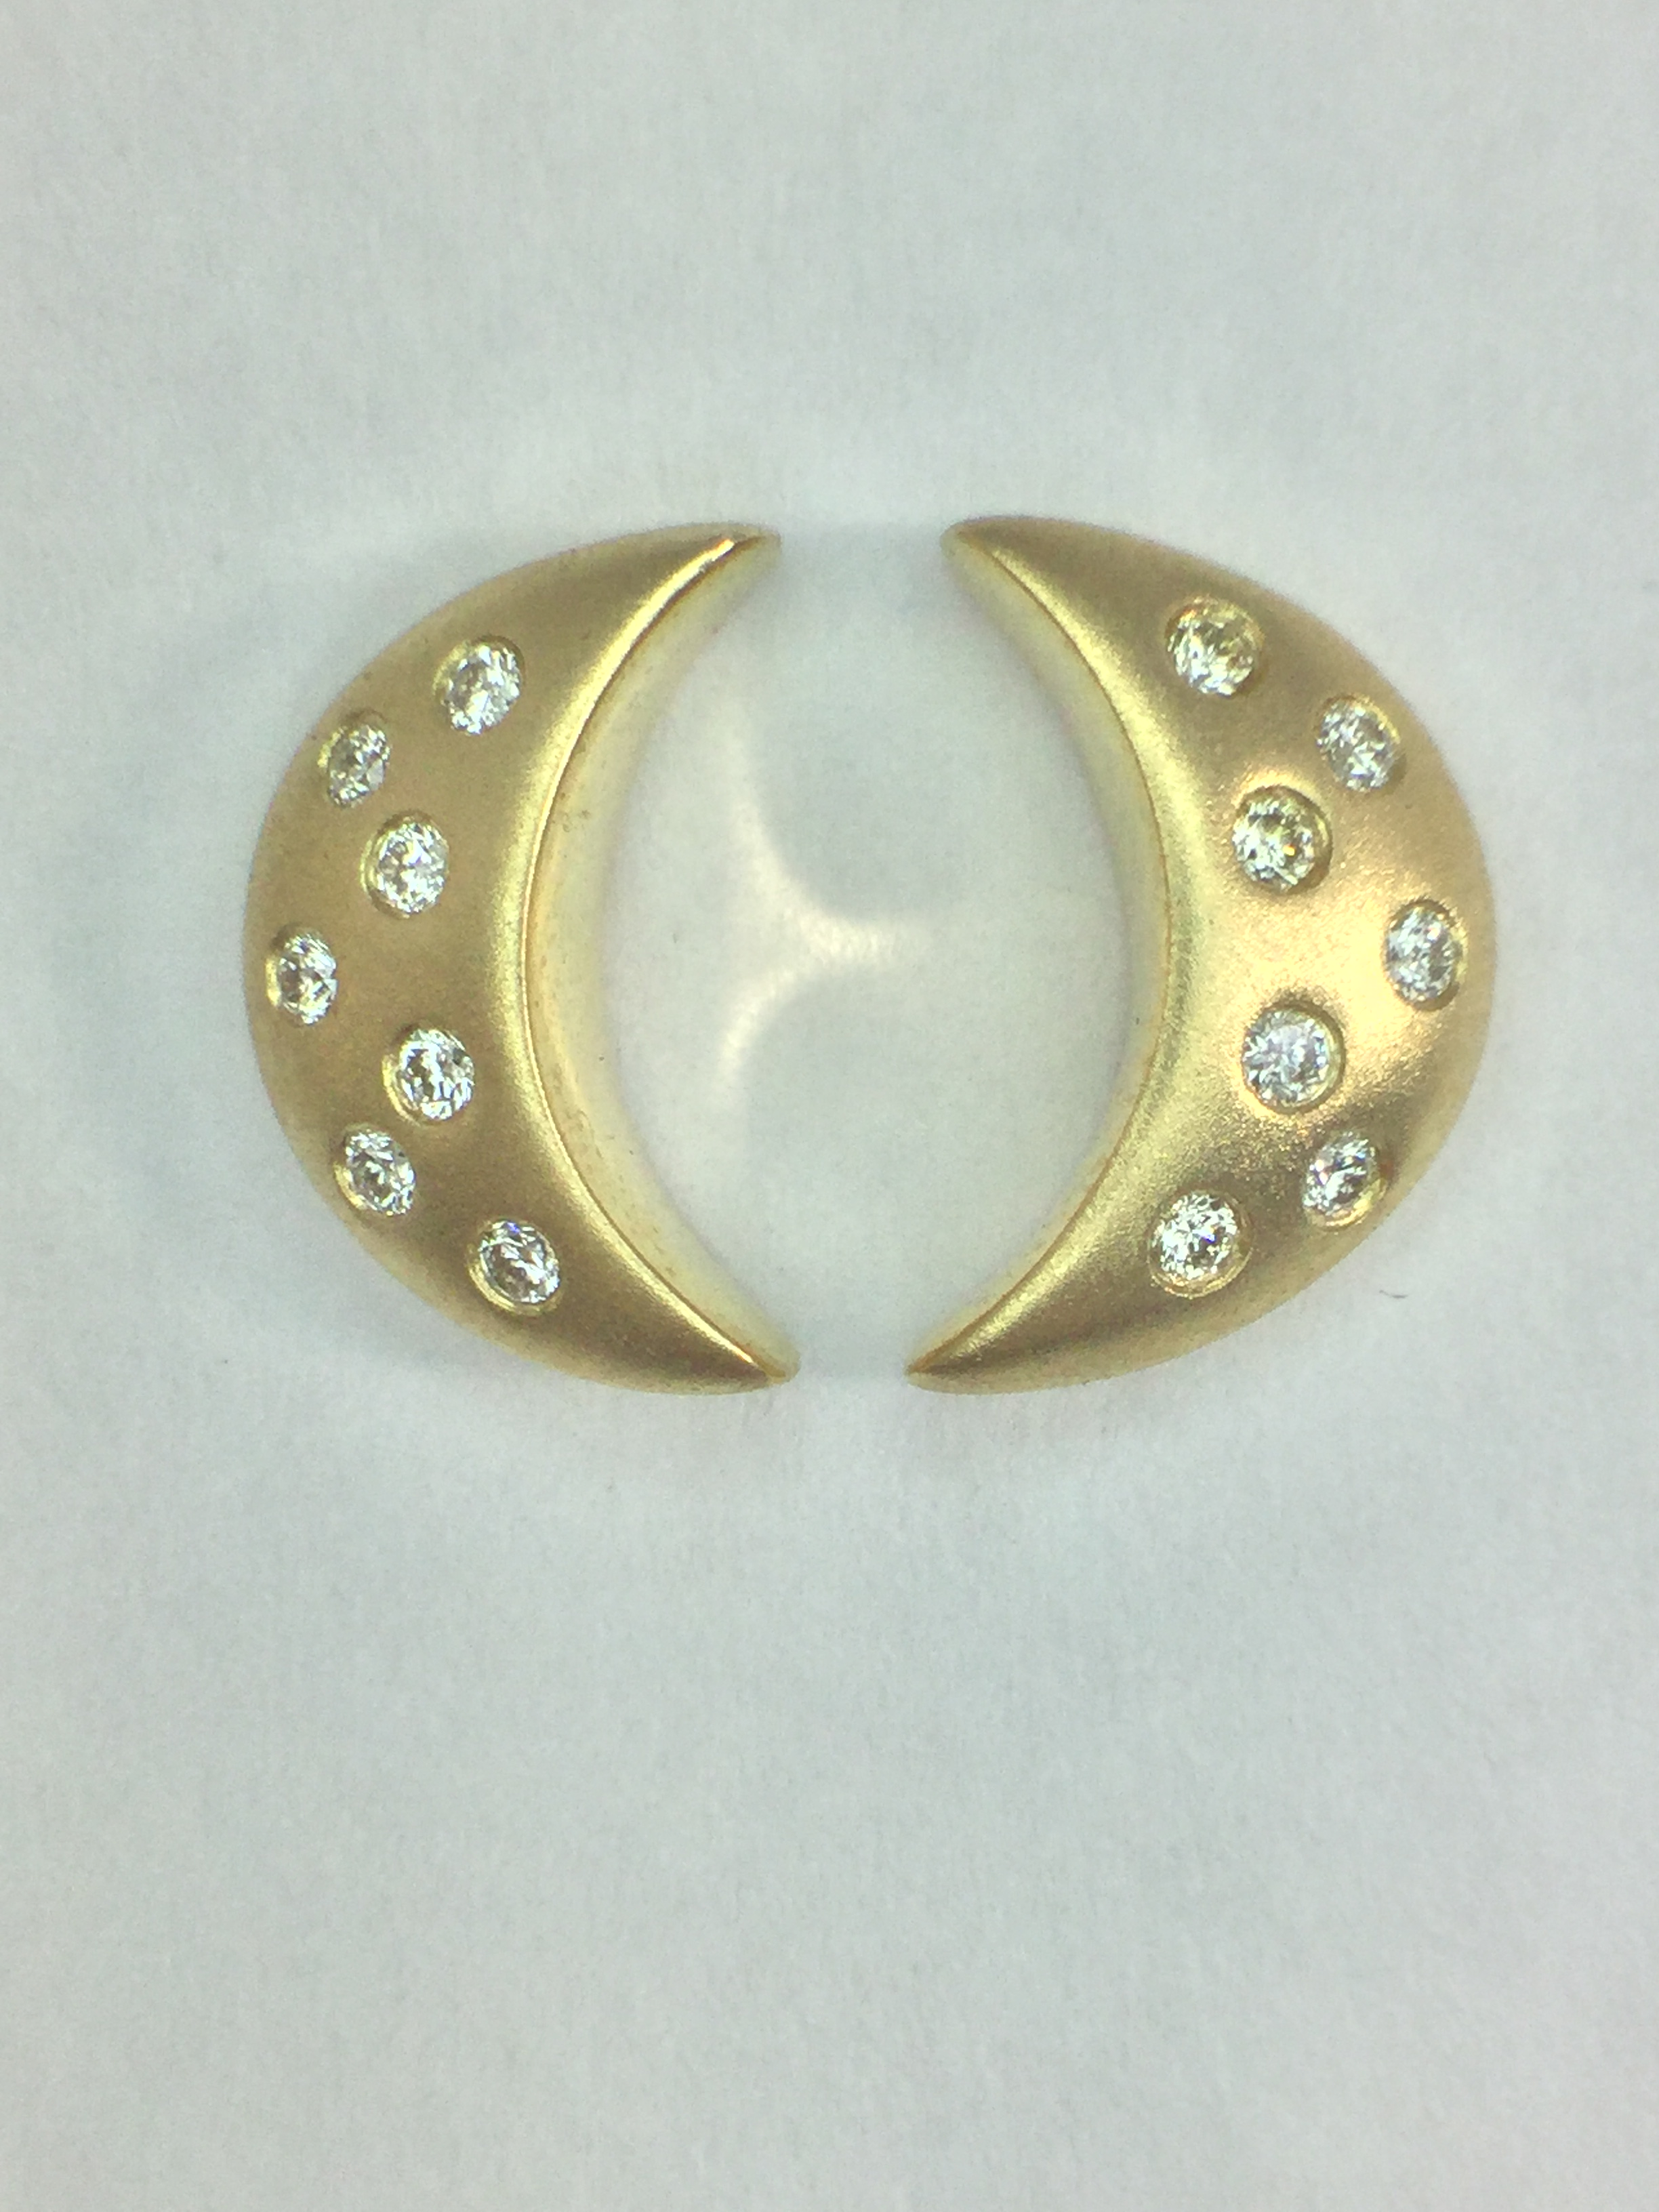 14k Yellow Gold Moonlight Stud Earrings with Diamonds